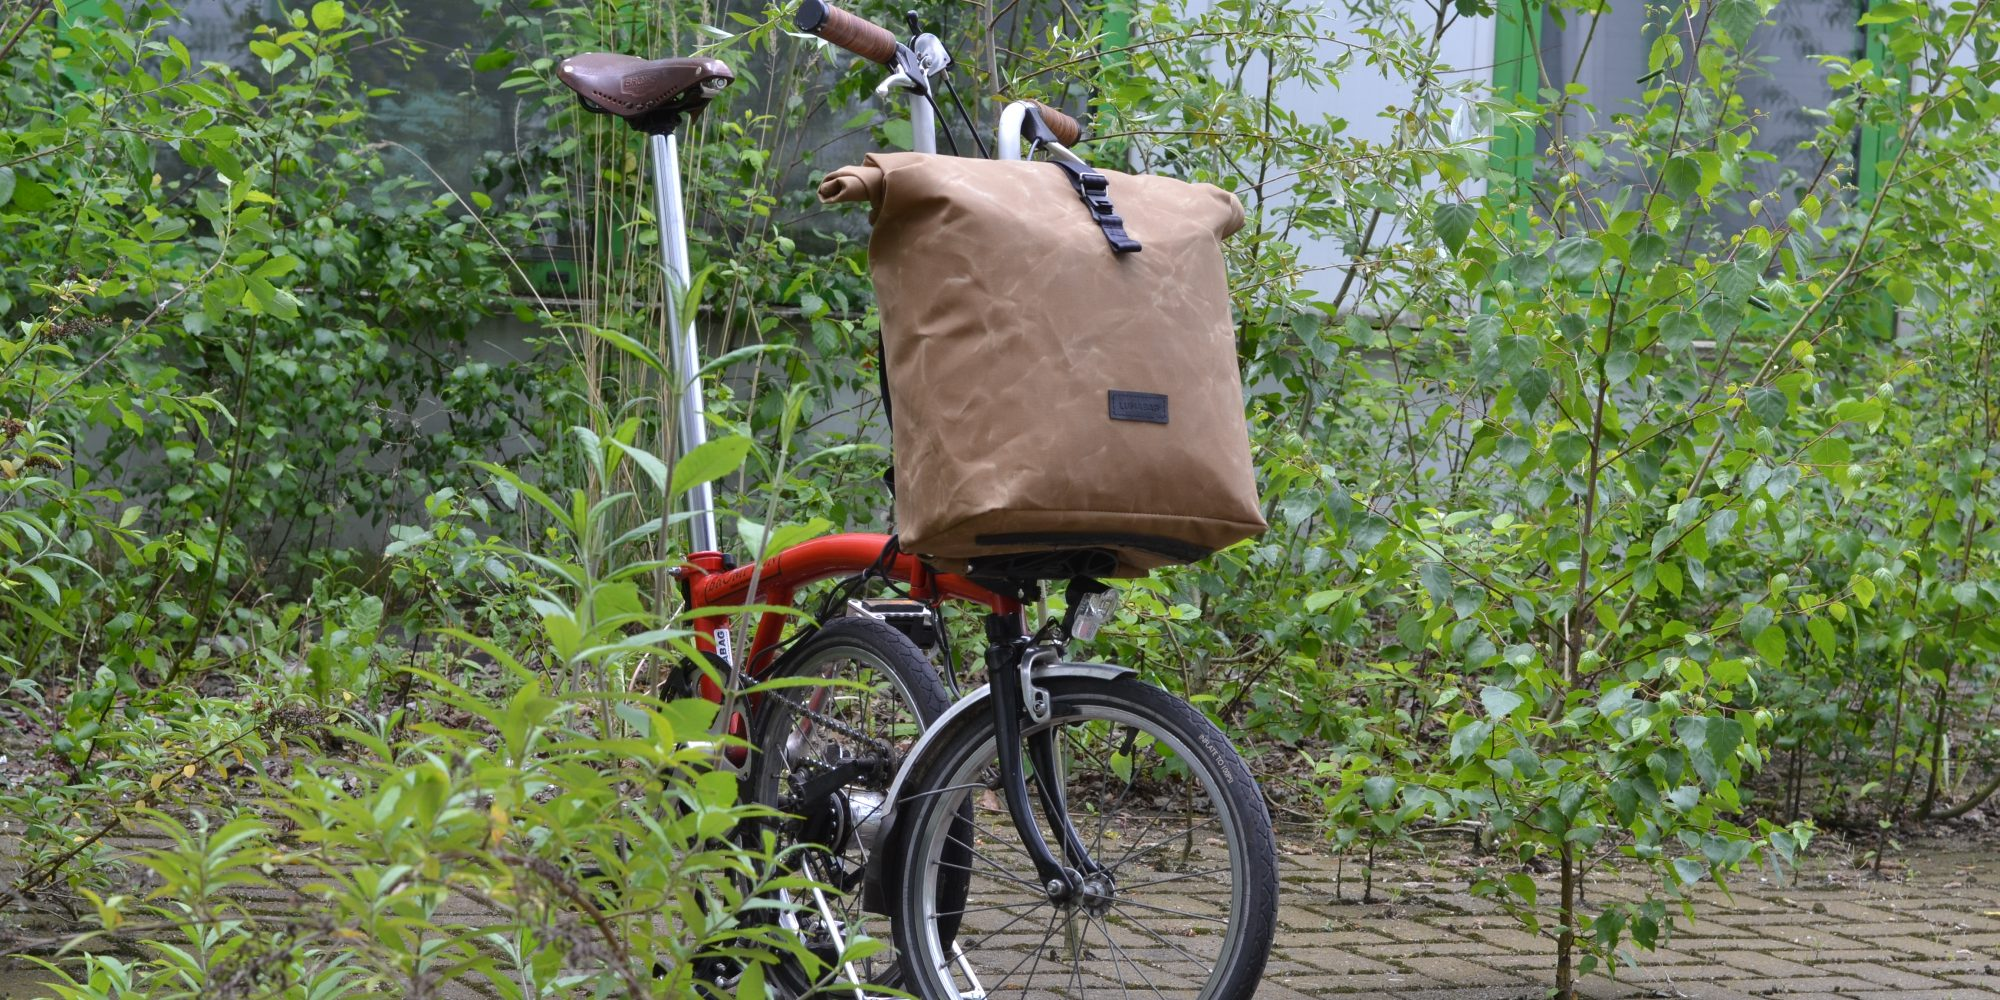 THE URBAN TRAVELLER for the Brompton bike